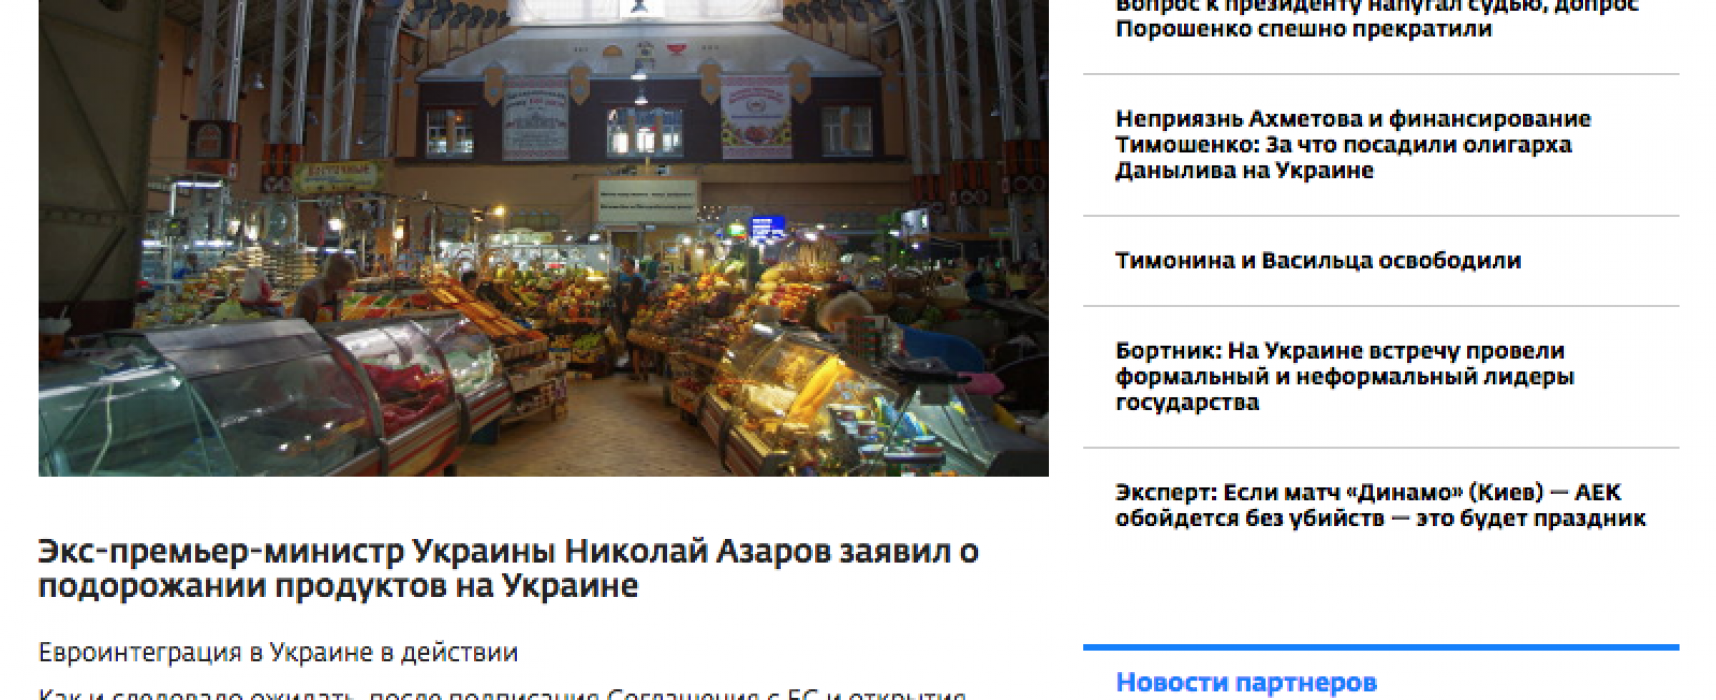 Fake: Ukrainian Food Prices Nearly Equal EU Levels